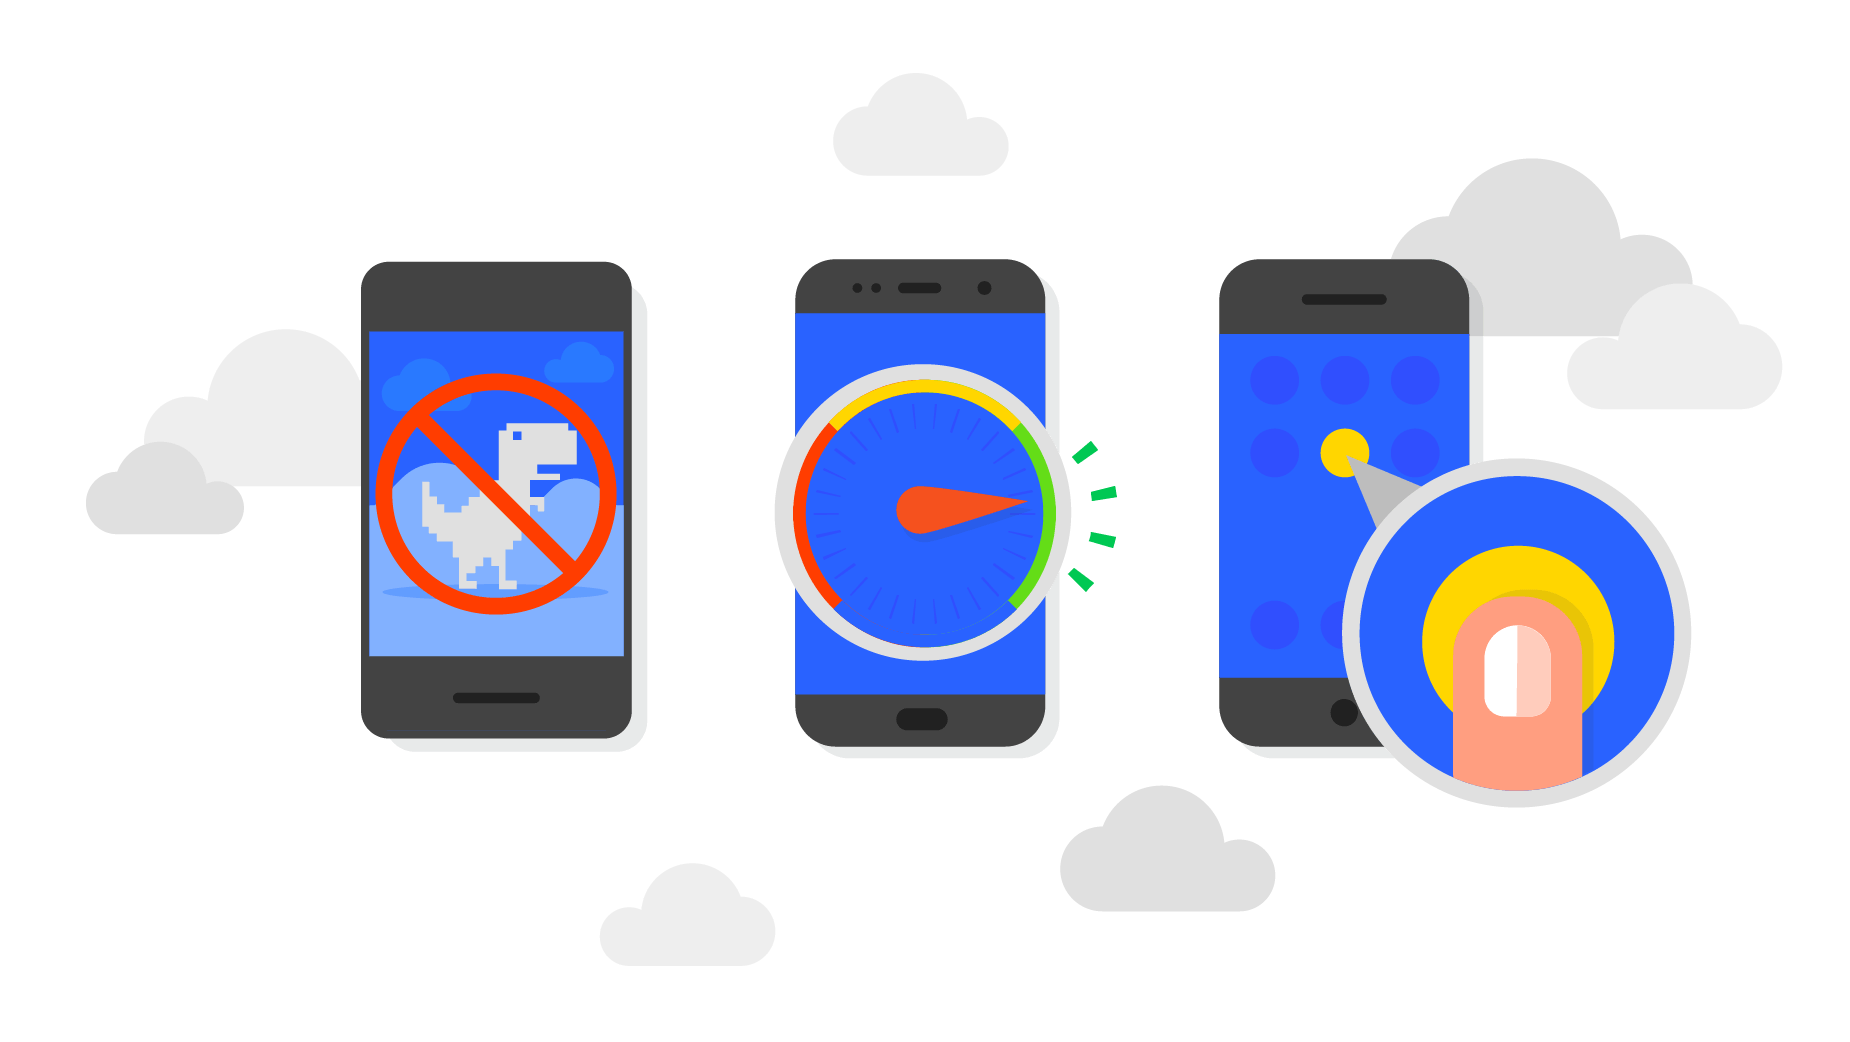 Progressive Web Application